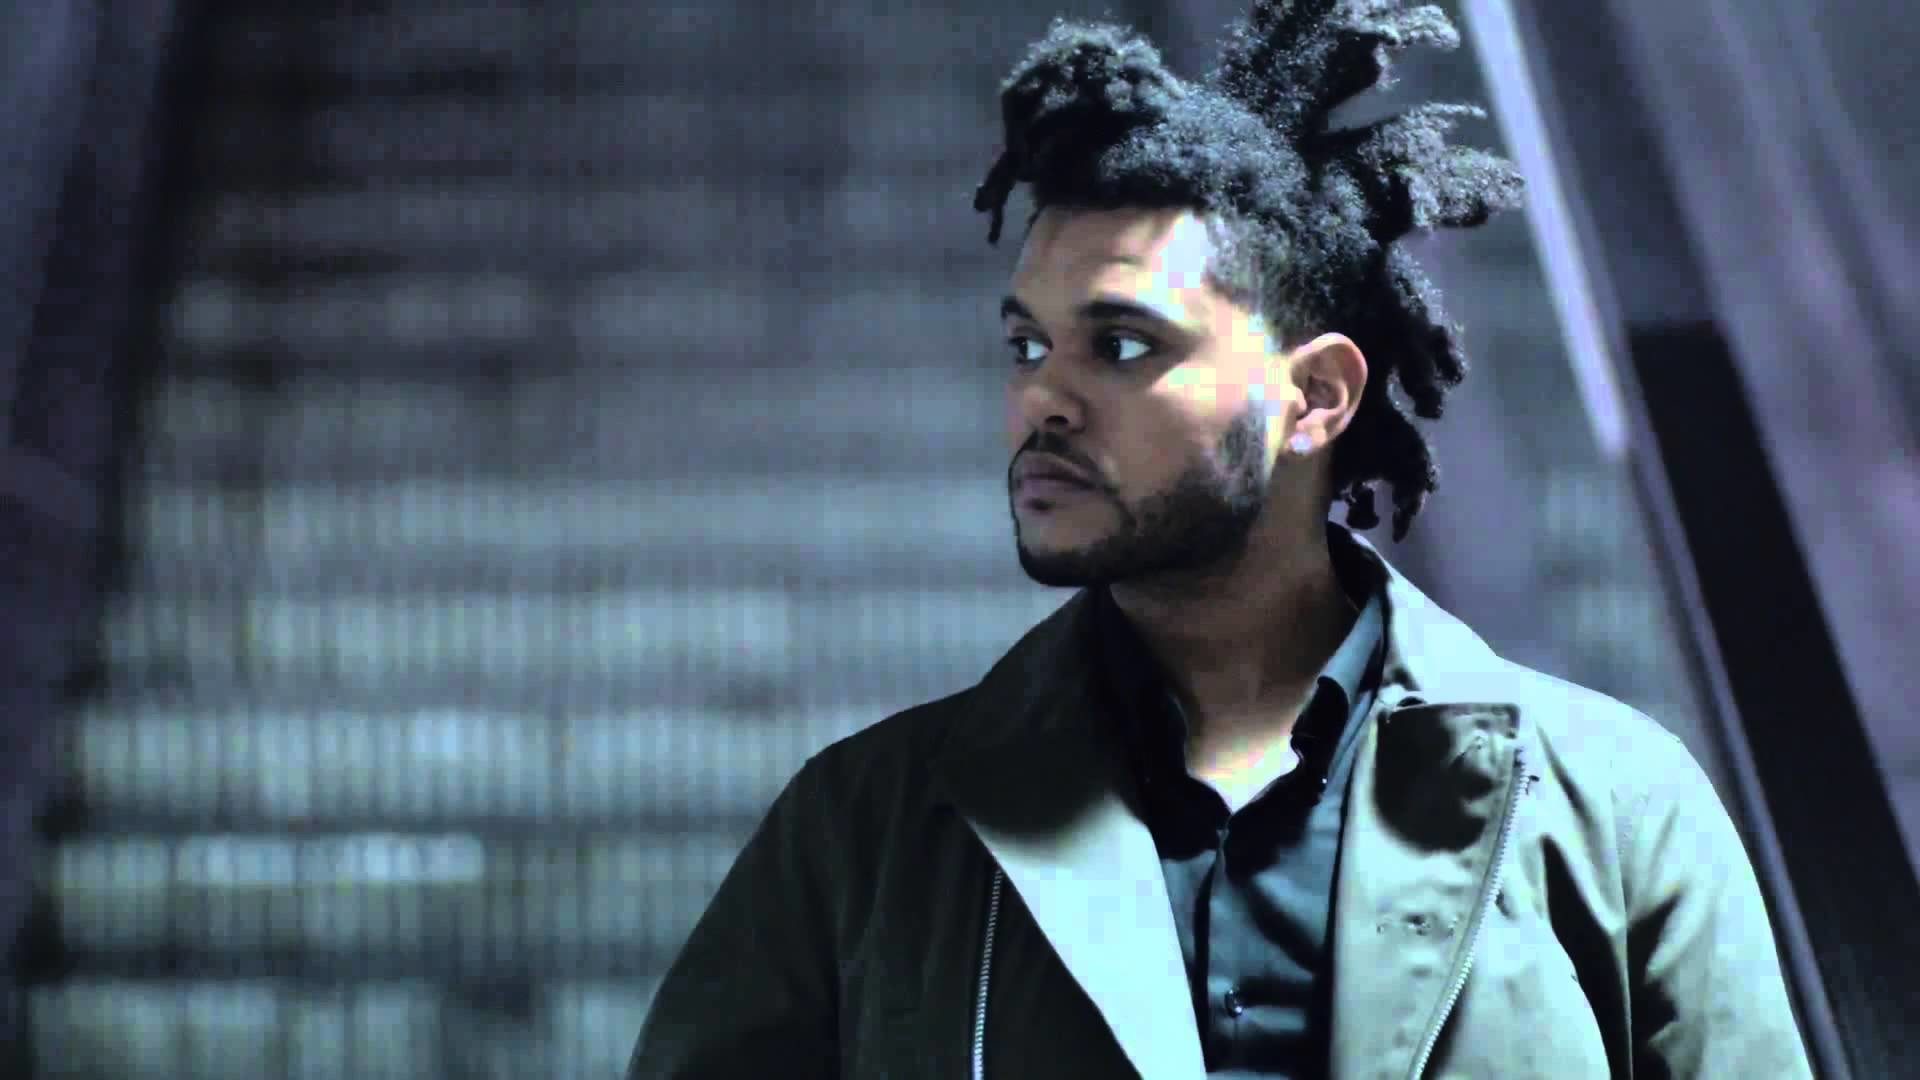 1920x1080 the weeknd iphone wallpapers Tumblr 1920×1080 The Weeknd Wallpaper |  Adorable Wallpapers